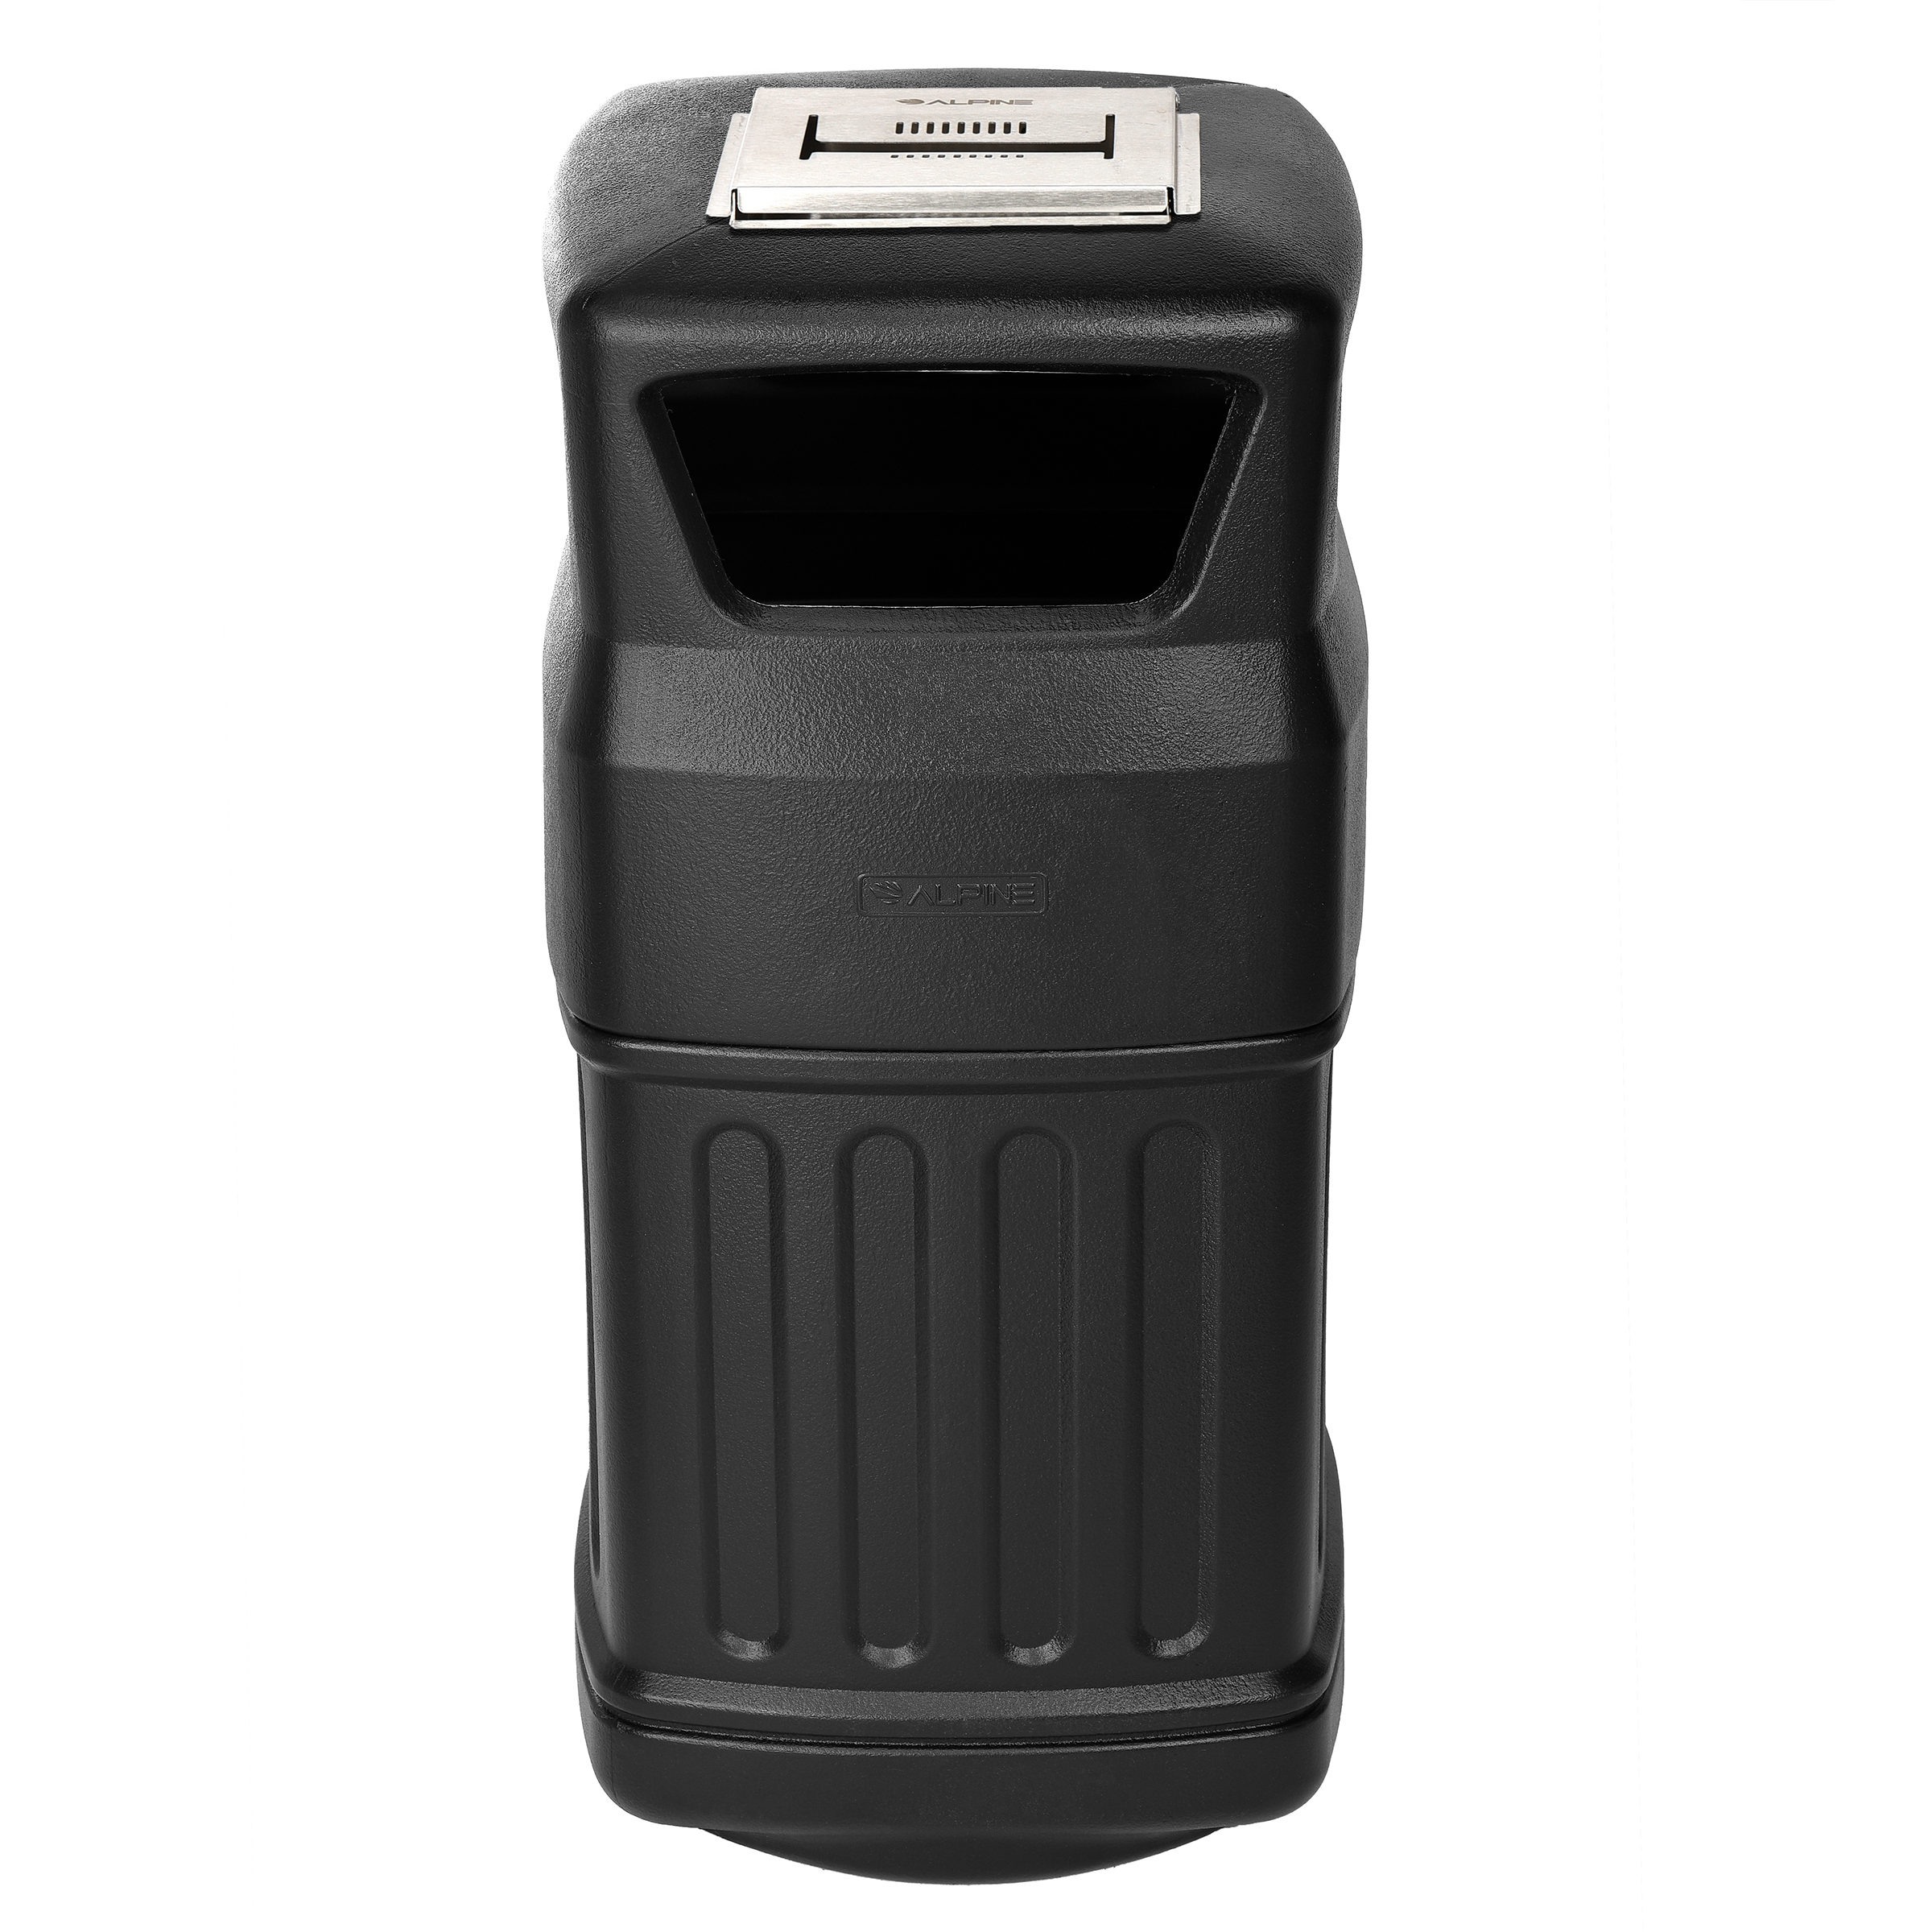 ALPINE INDUSTRIES OUTDOOR/INDOOR TRASH CAN WITH ASH URN, BLACK, 16-GALLON CAPACITY